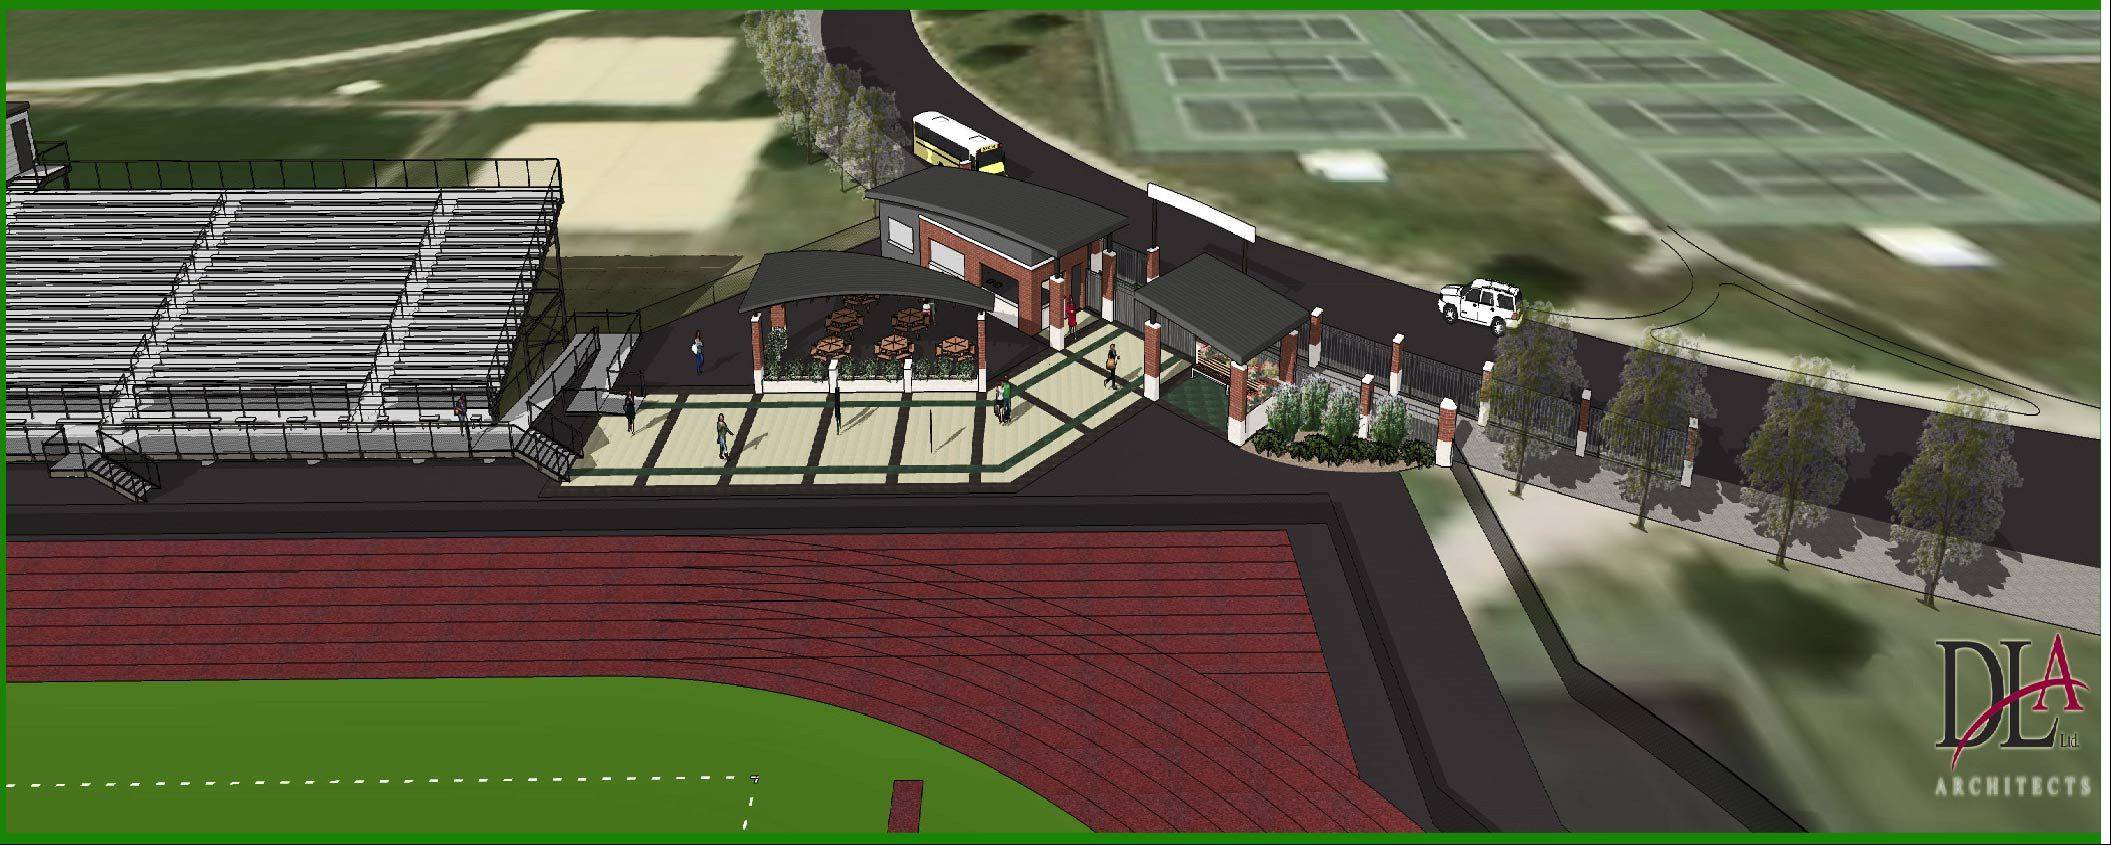 This is a sketch of what the Bartlett High School Activities Complex would look like.